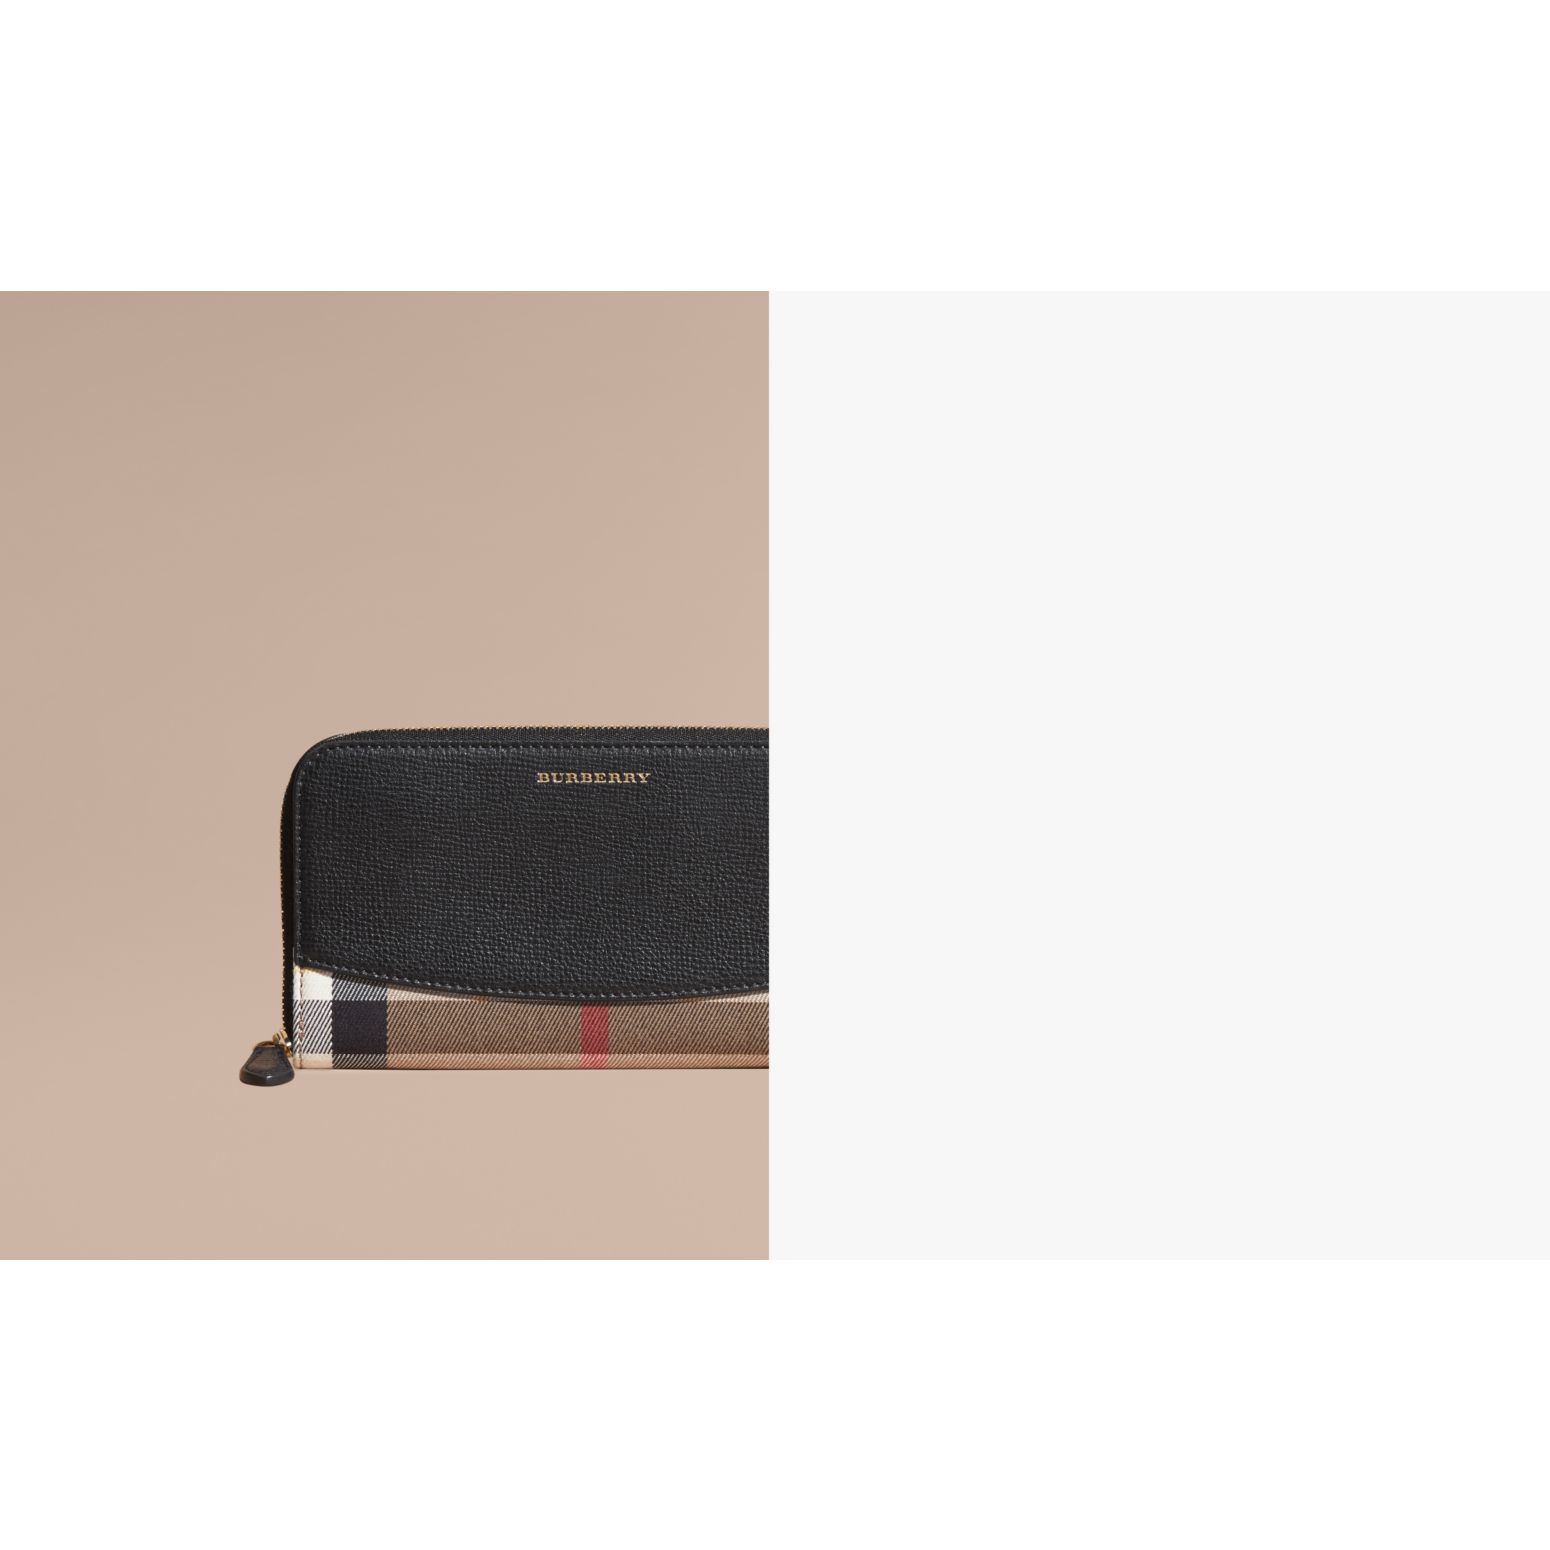 House Check and Leather Ziparound Wallet in Black - Women | Burberry Australia - gallery image 1